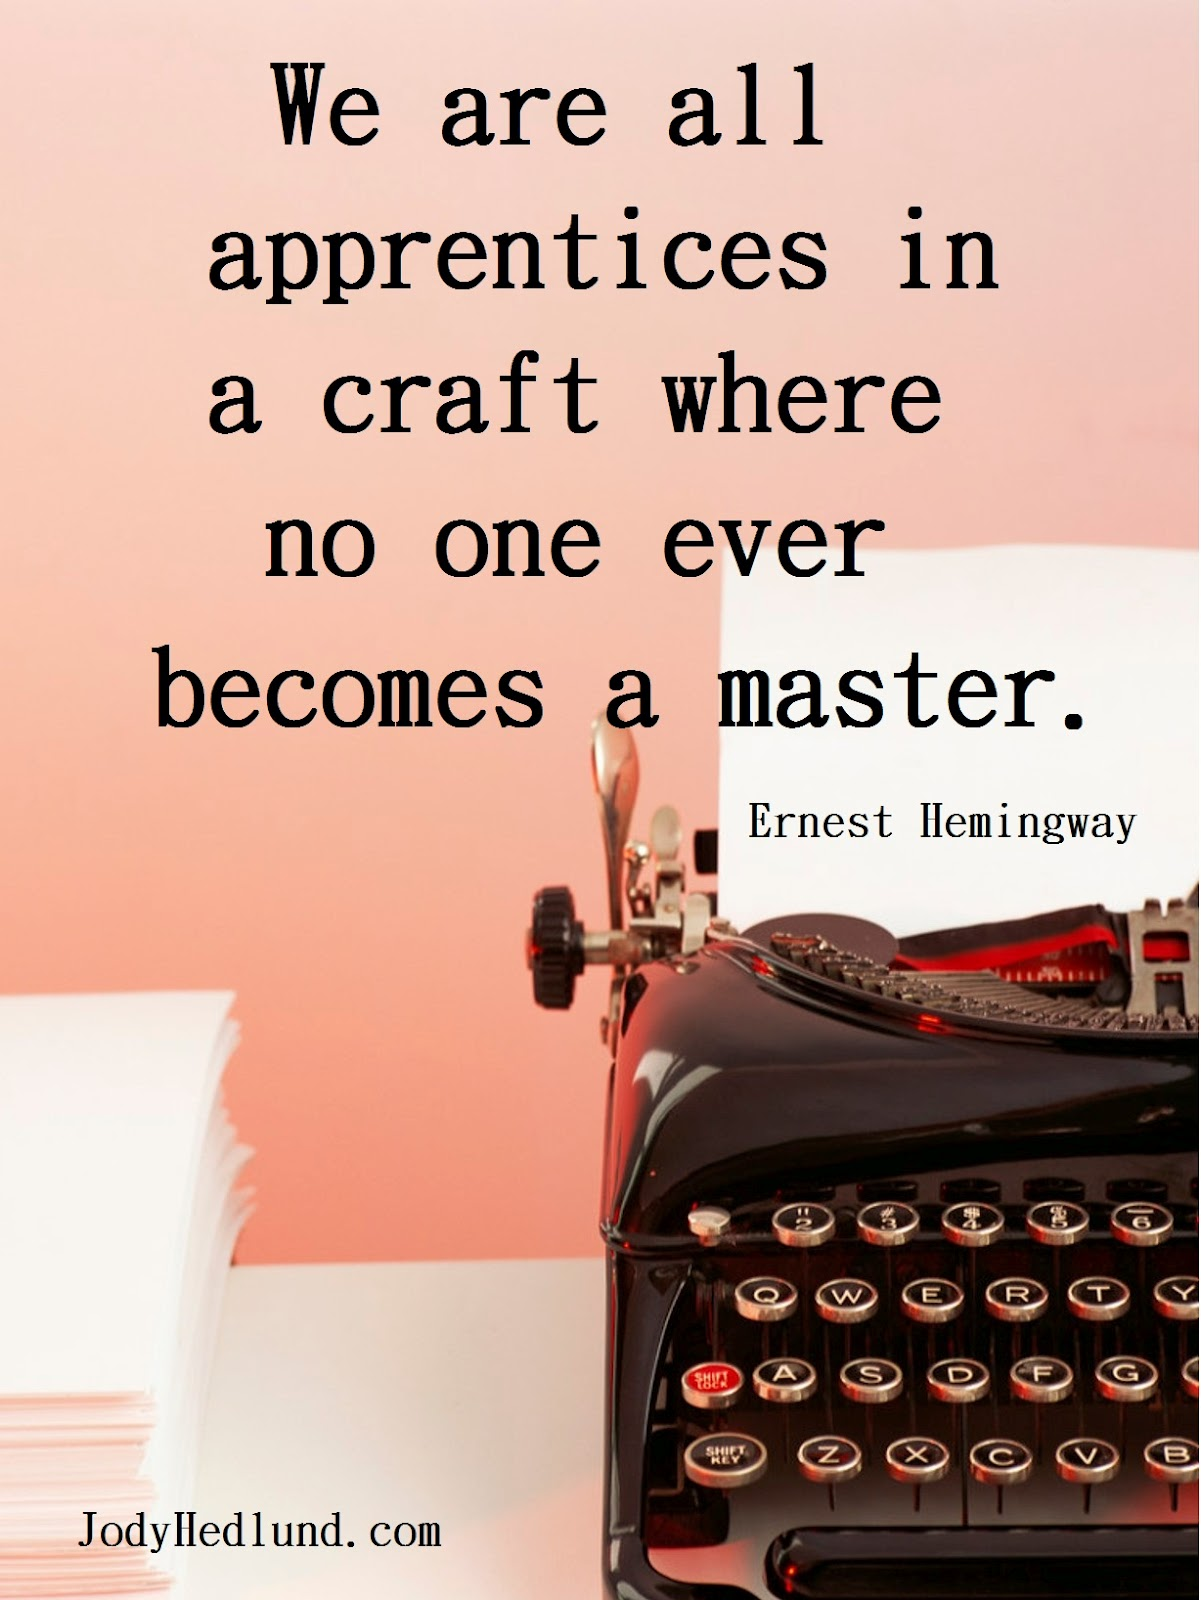 ernest hemingway mark anthony books we are all apprentices in a craft where no one ever becomes a master ernest hemingway